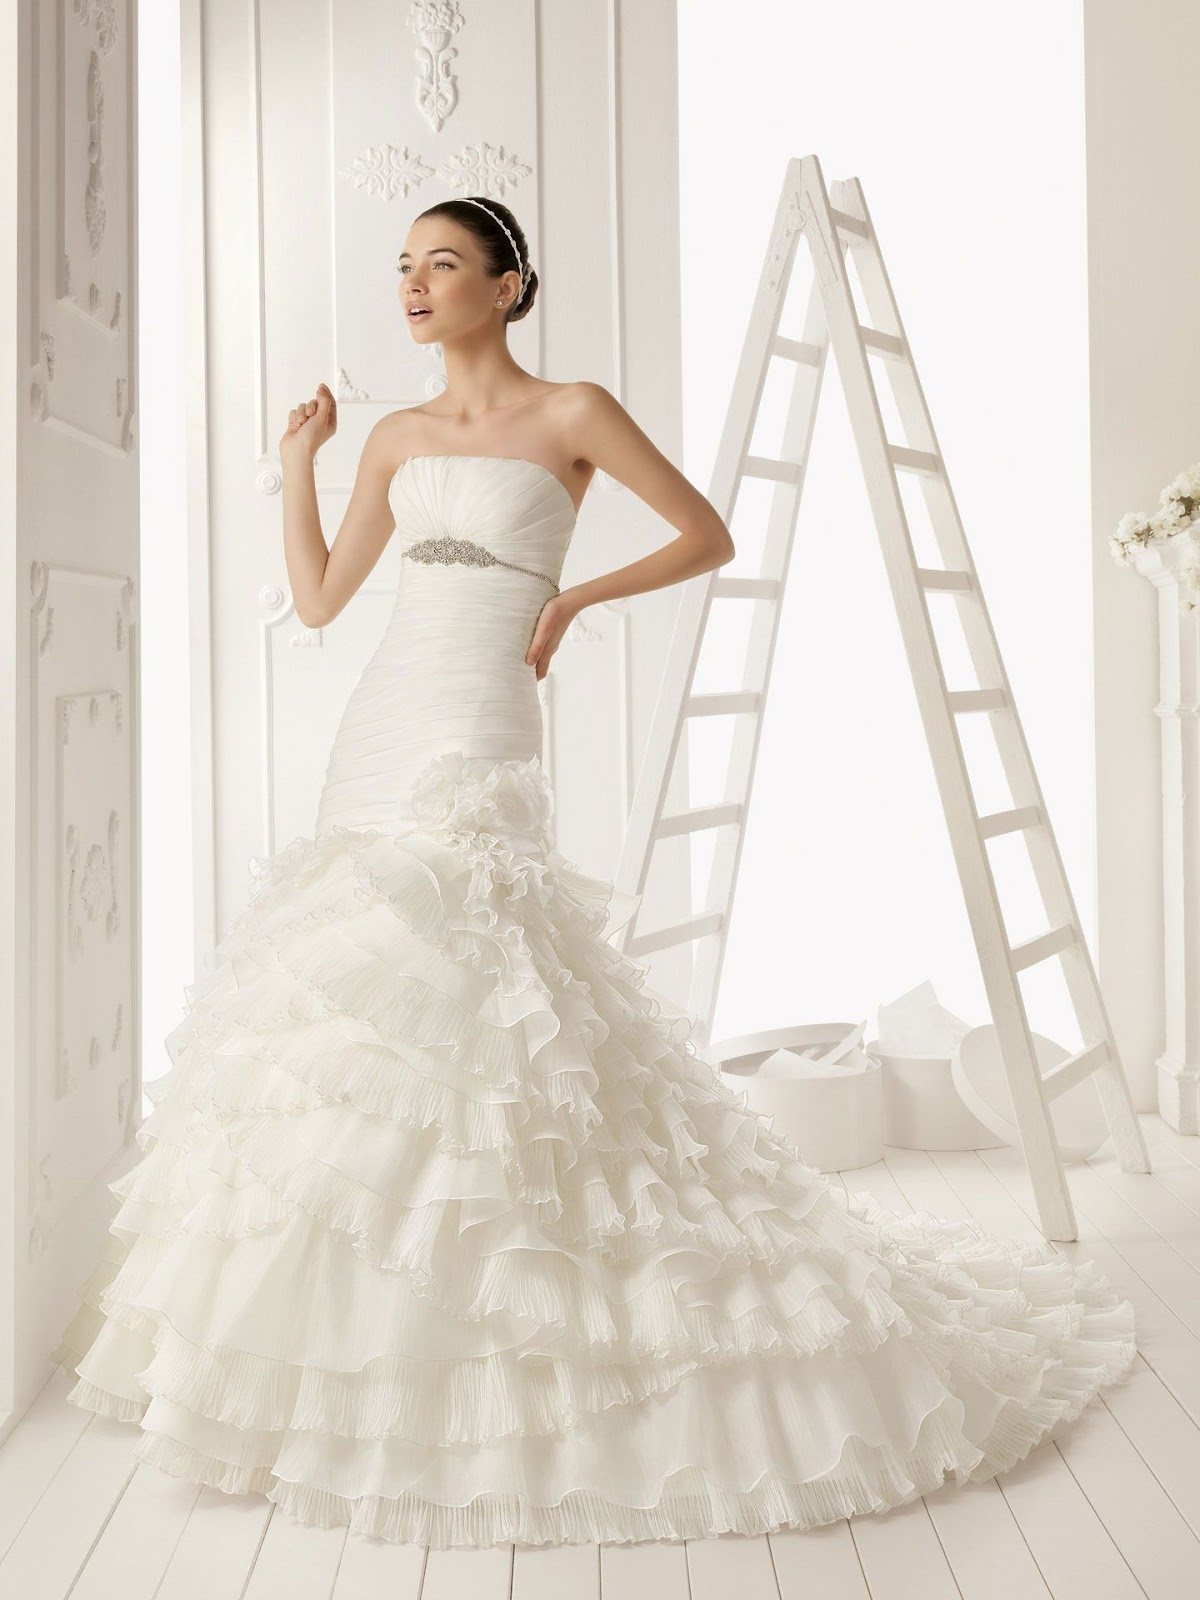 aline wedding dress is the best choice for you